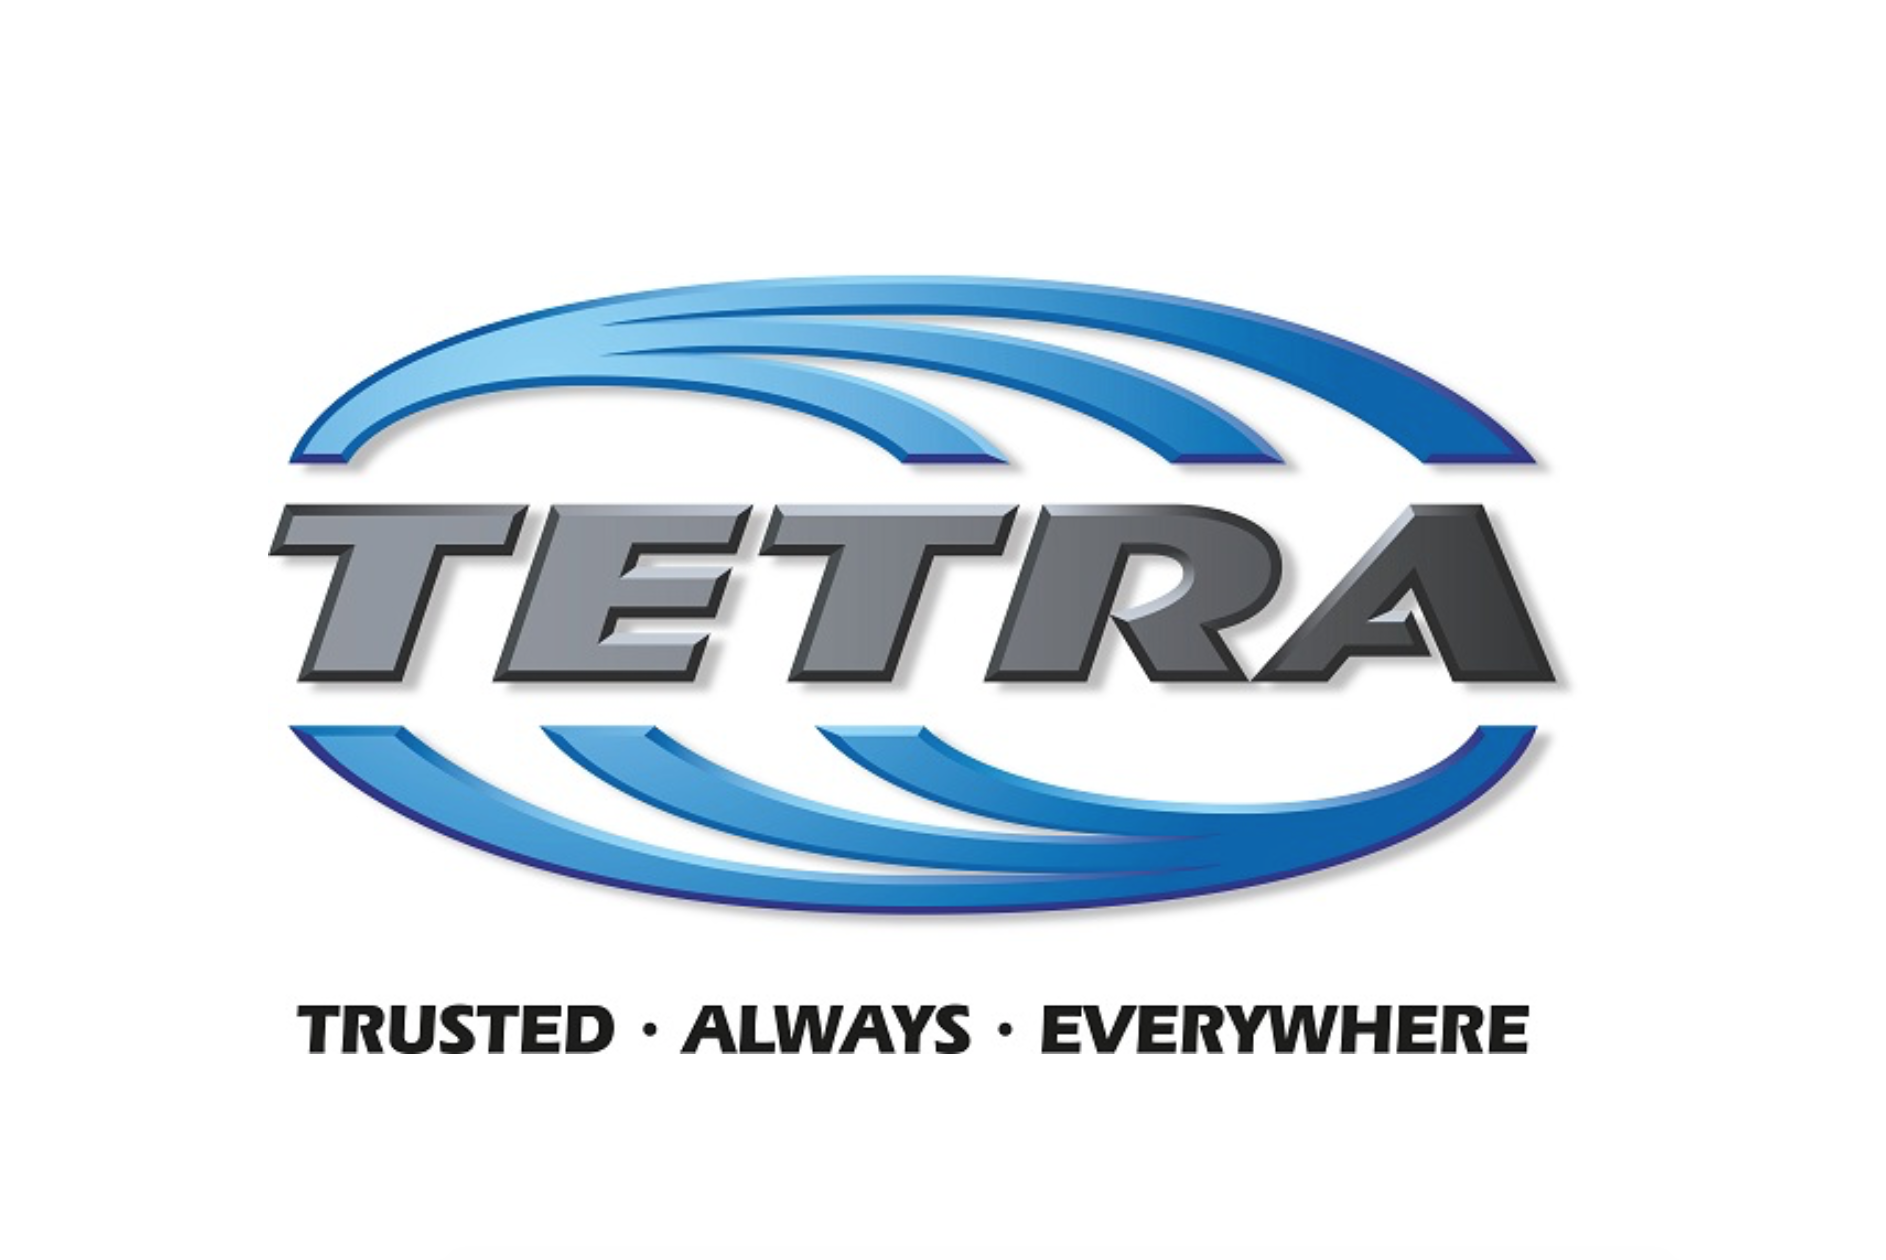 The Critical Communications Review - TETRA Security